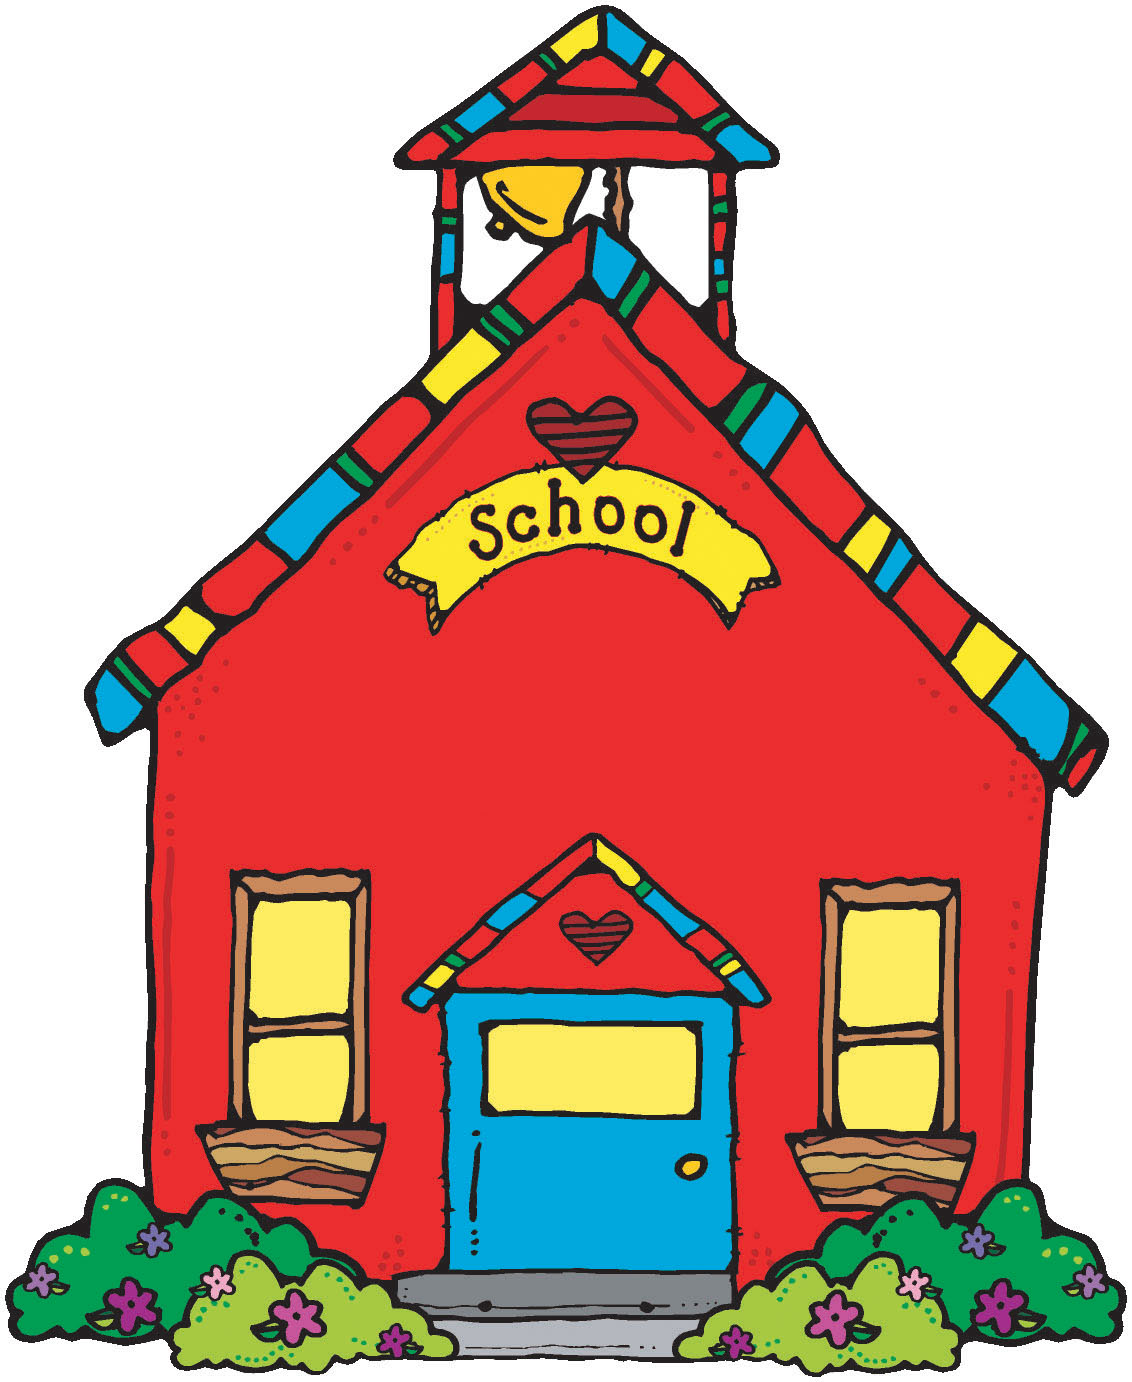 Schoolhouse clipart illustration image